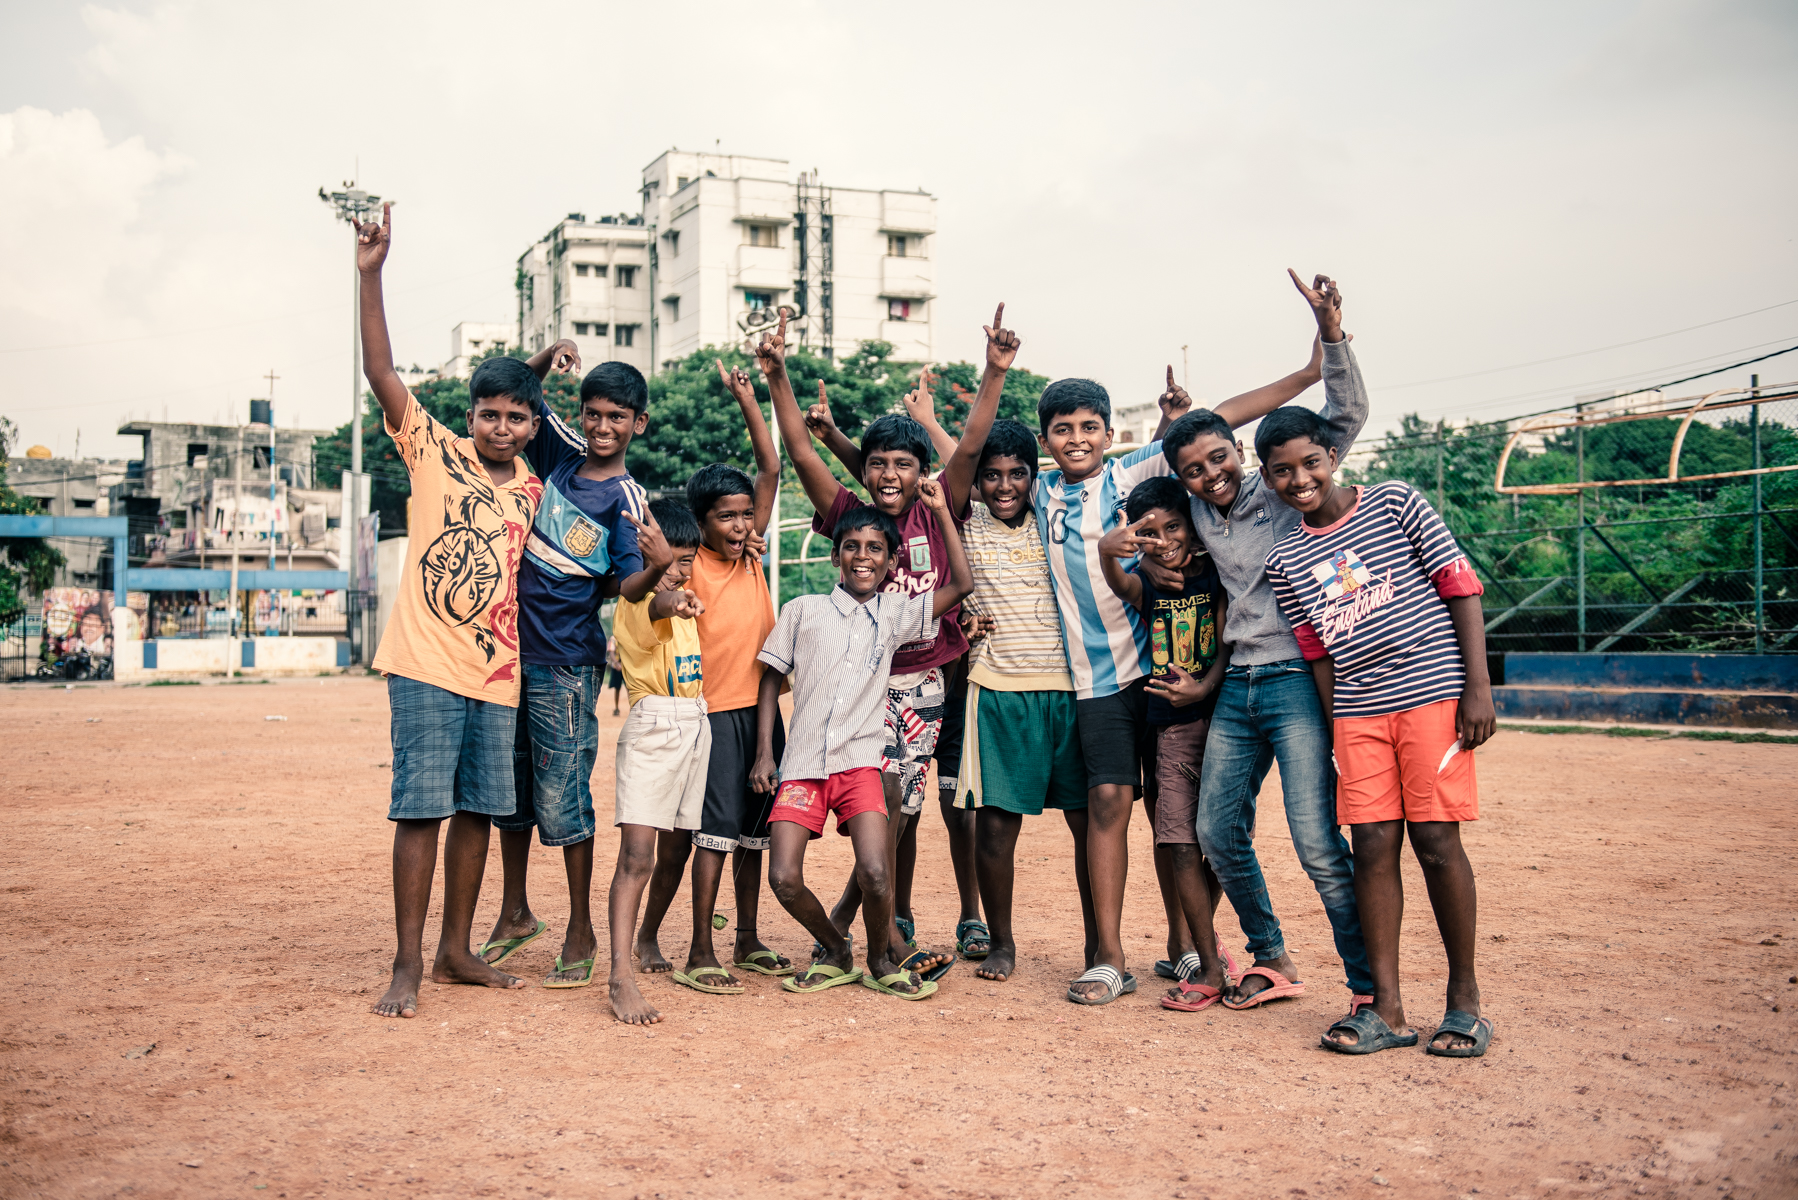 PL_India_Day1_Alex_Wallace_Photography_056.jpg